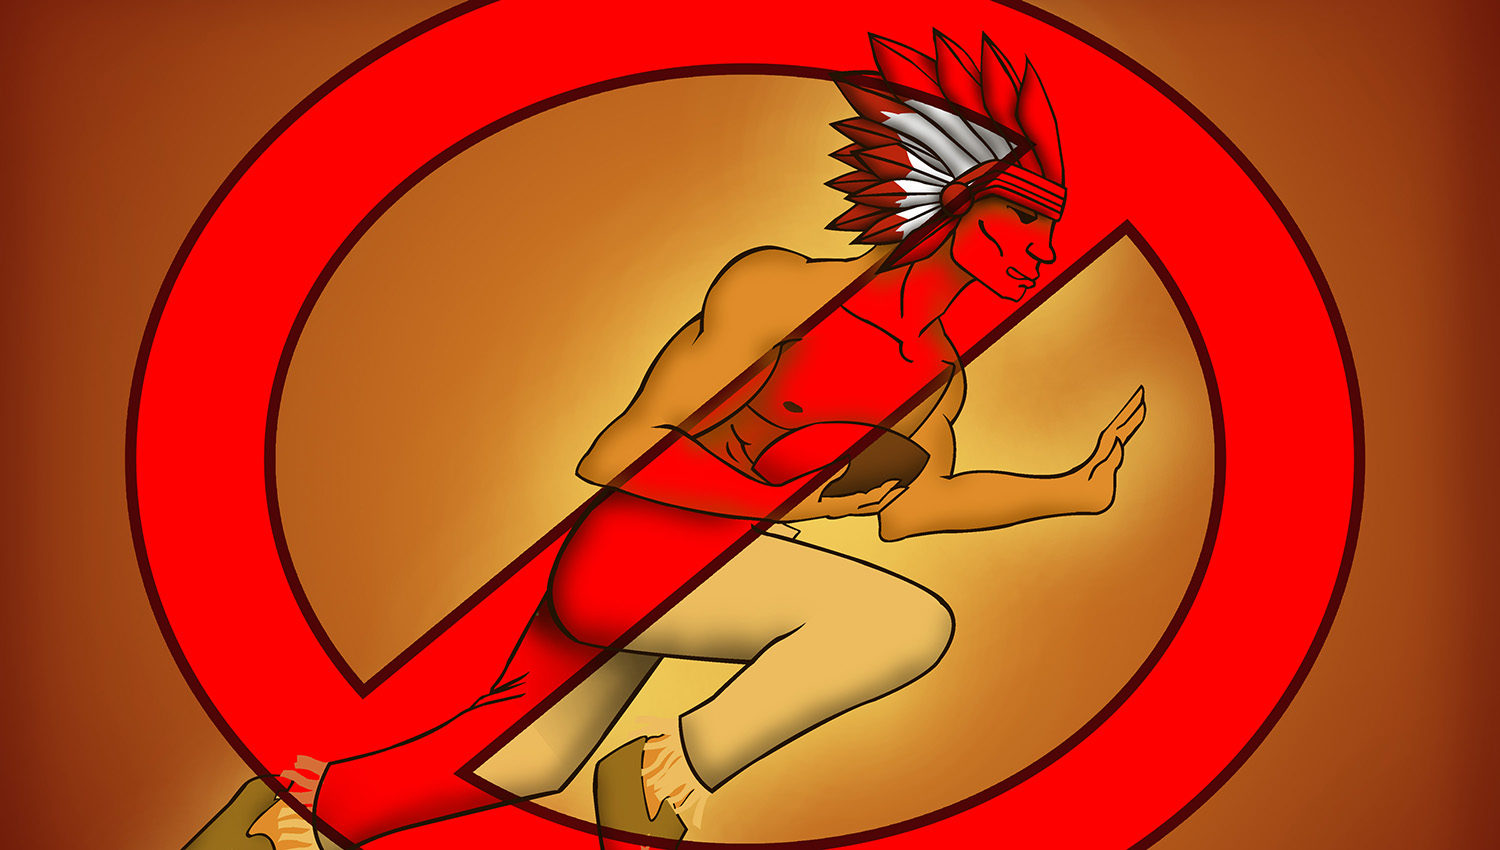 """Illustration of a stereotypical """"Indian Chief"""" holding a football with a red cross over top"""